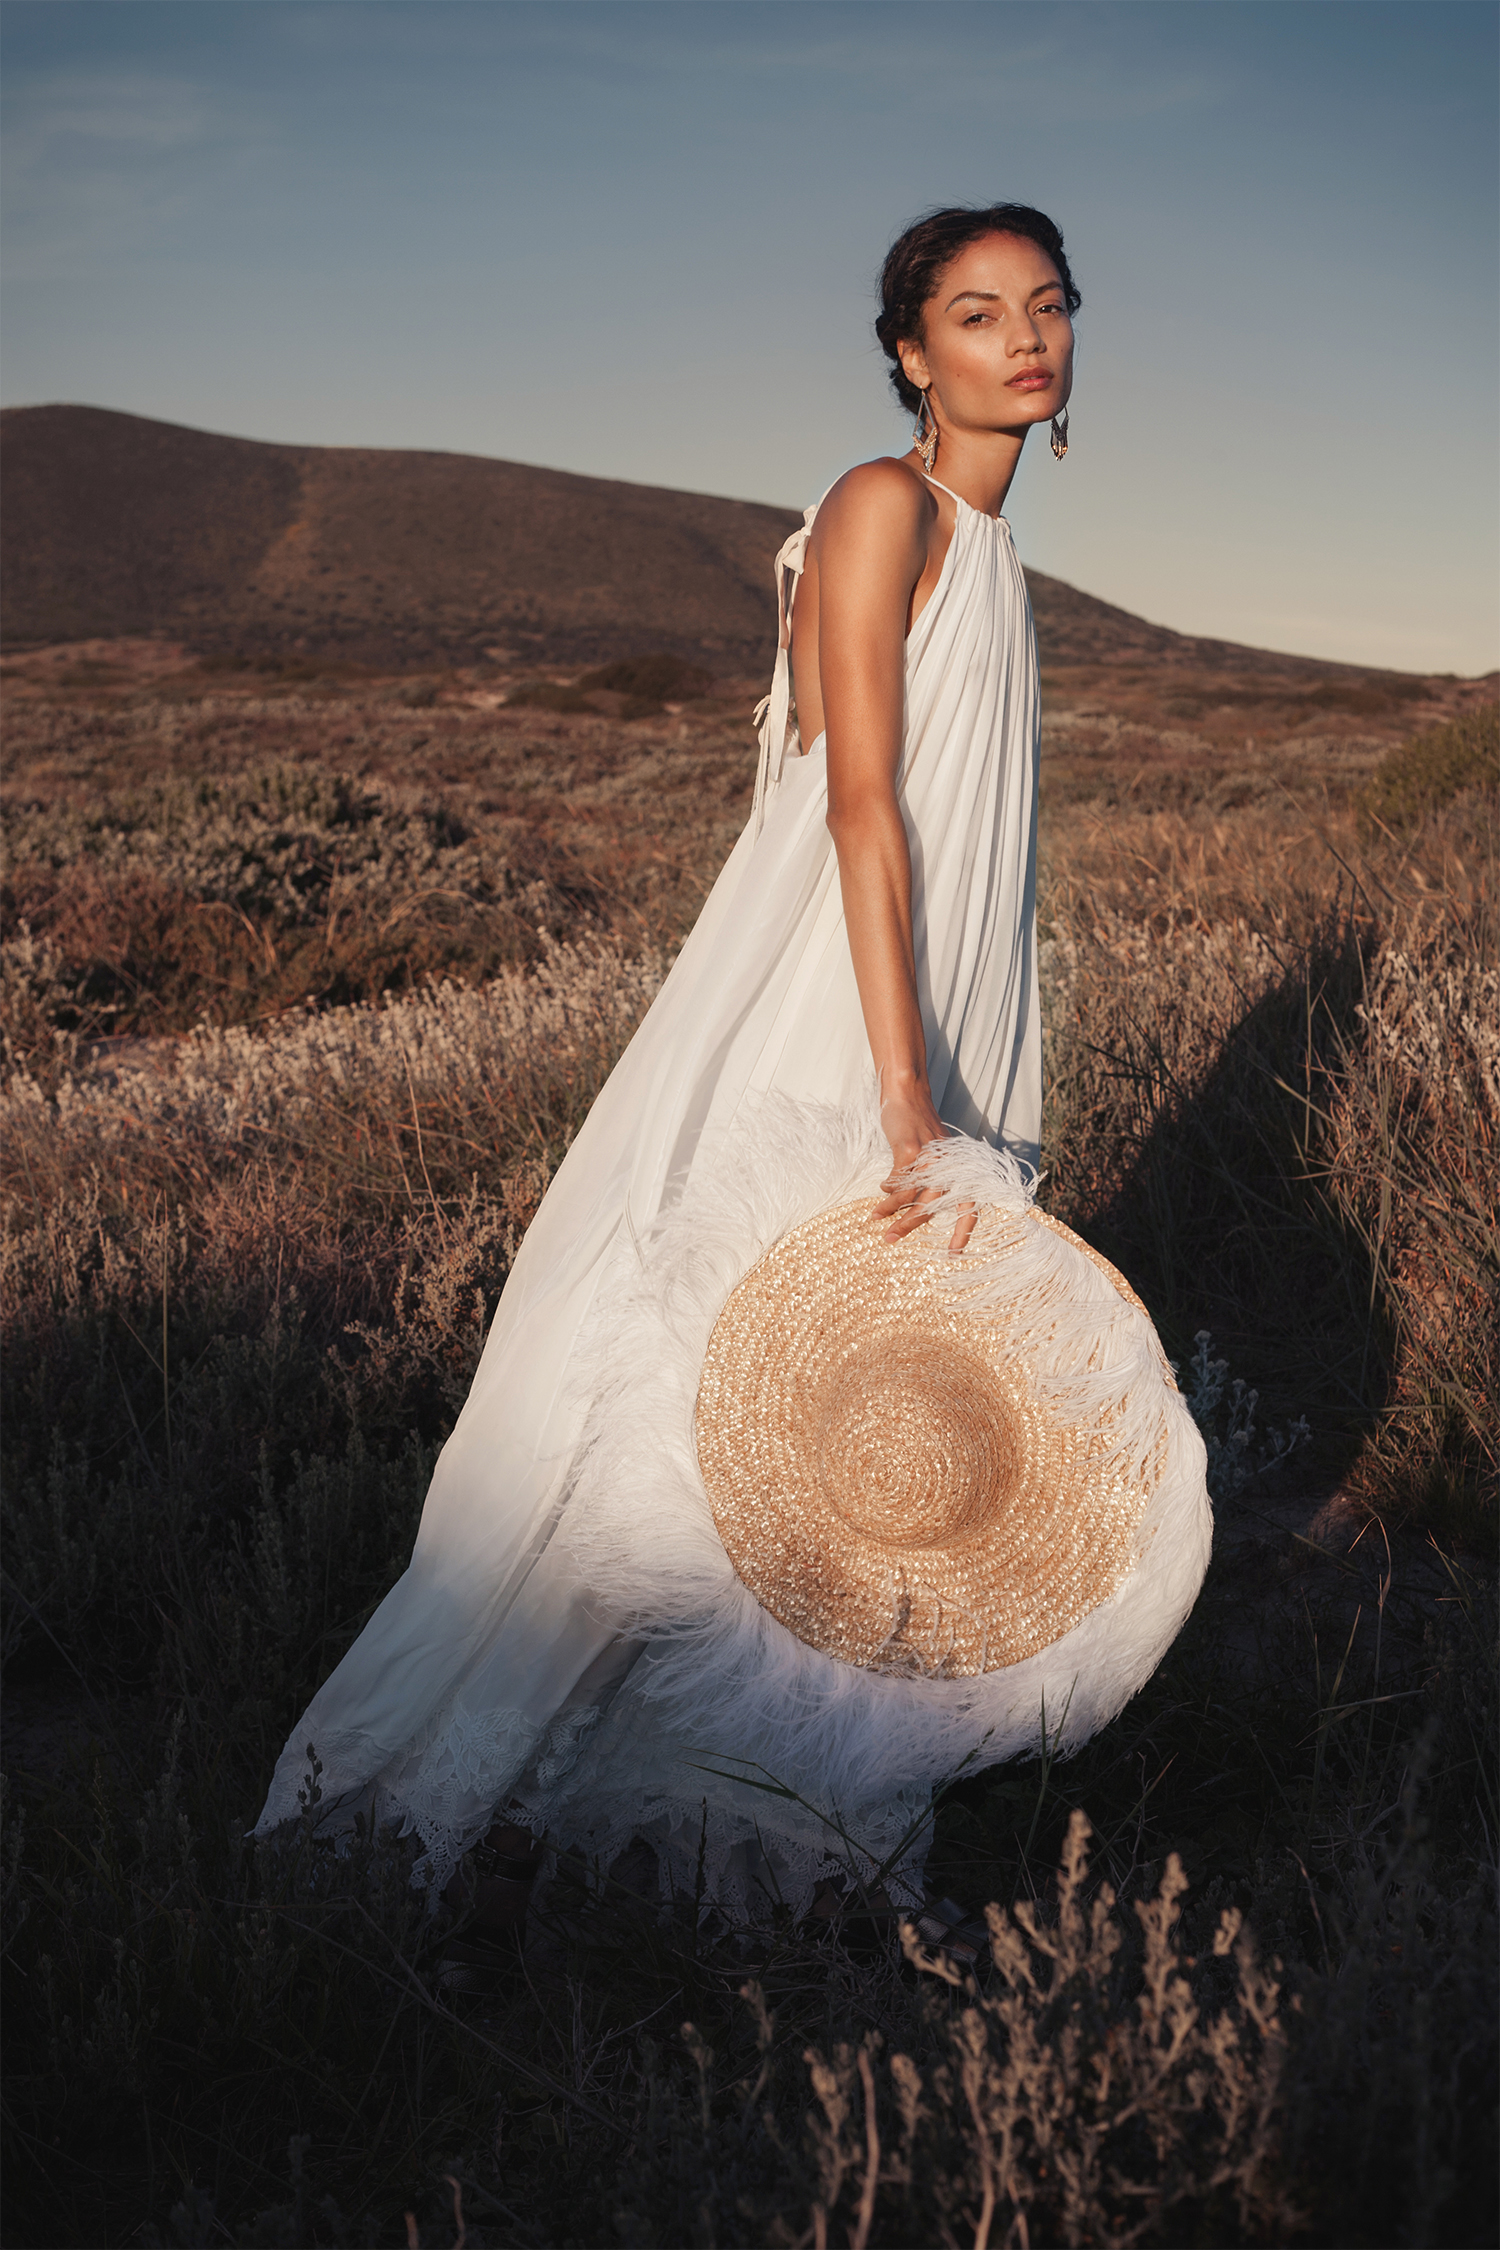 White maxi dress, Shana Morland ; straw hat with white feathers, Crystal Birch ; gold chandelier earrings, Vikki-Lou